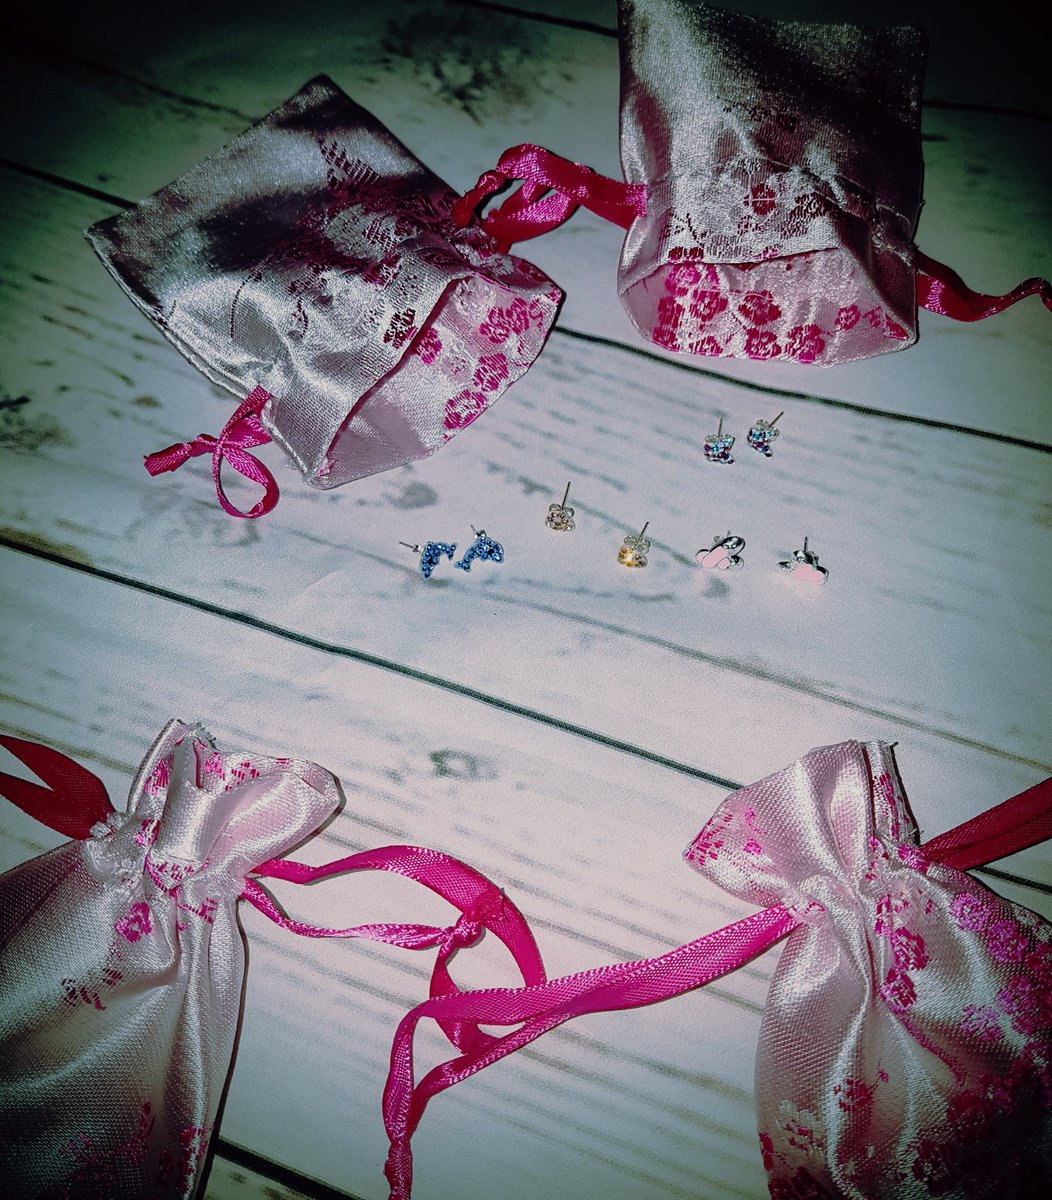 How do you approach buying gifts for &#39;other&#39; people&#39;s children? #giftgiving #giftideas #birthdays<br>http://pic.twitter.com/BKHKGoYCBK